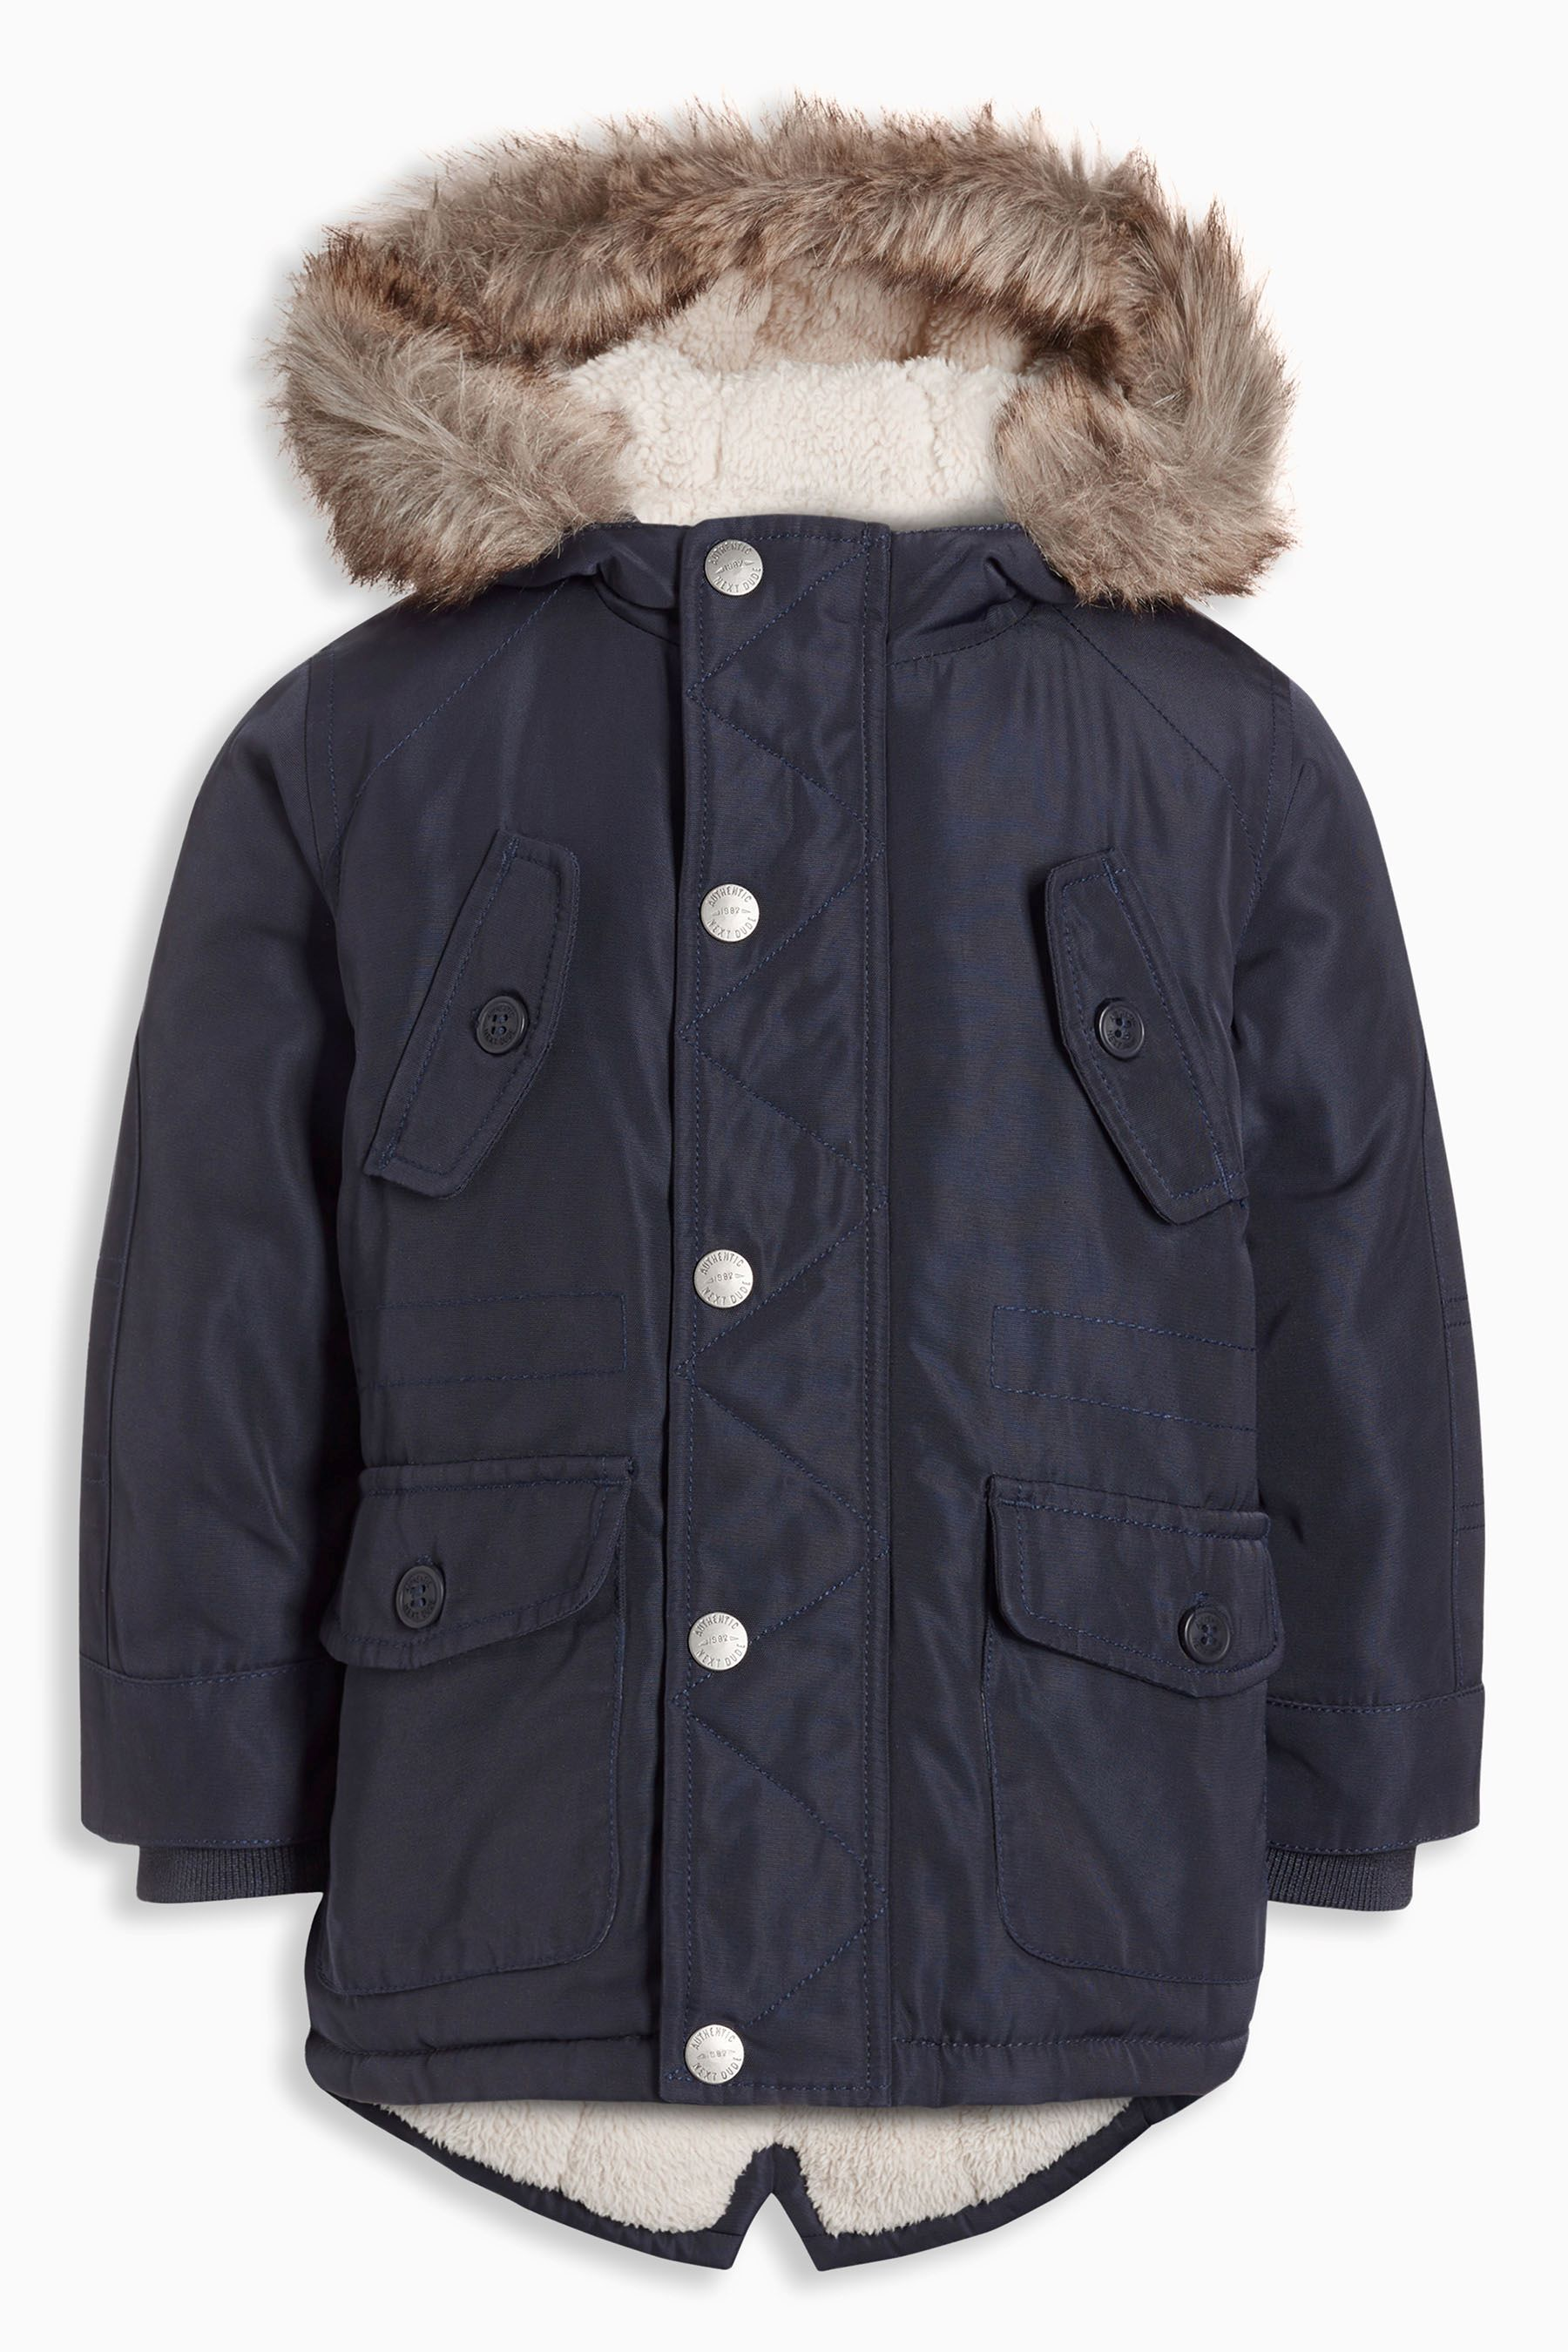 c86e80200e51 Buy Navy Parka Jacket (3mths-6yrs) from the Next UK online shop ...